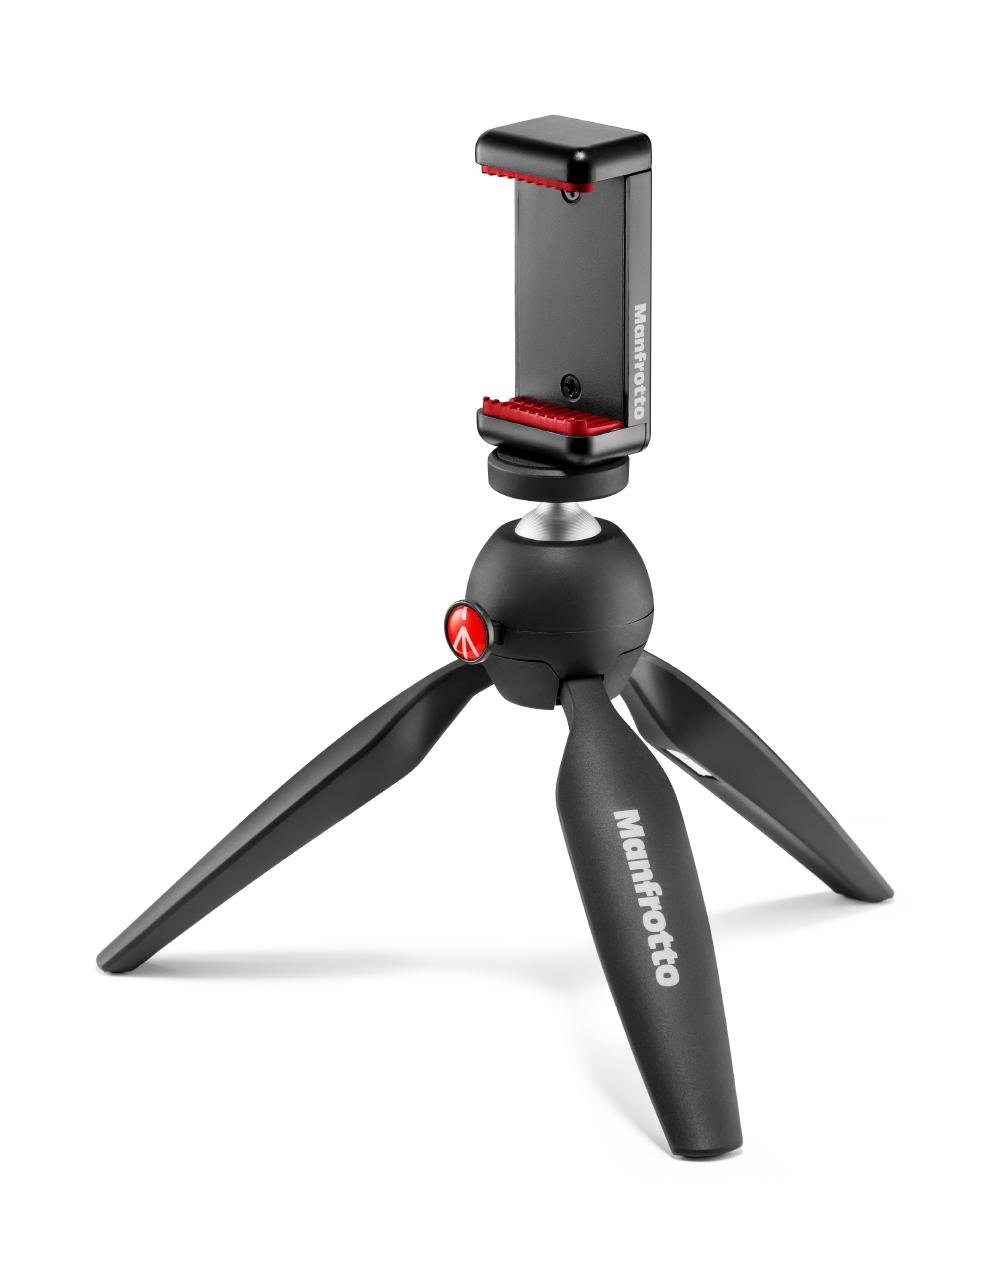 Manfrotto Stand for Universal Cell Phone - Retail Packaging.